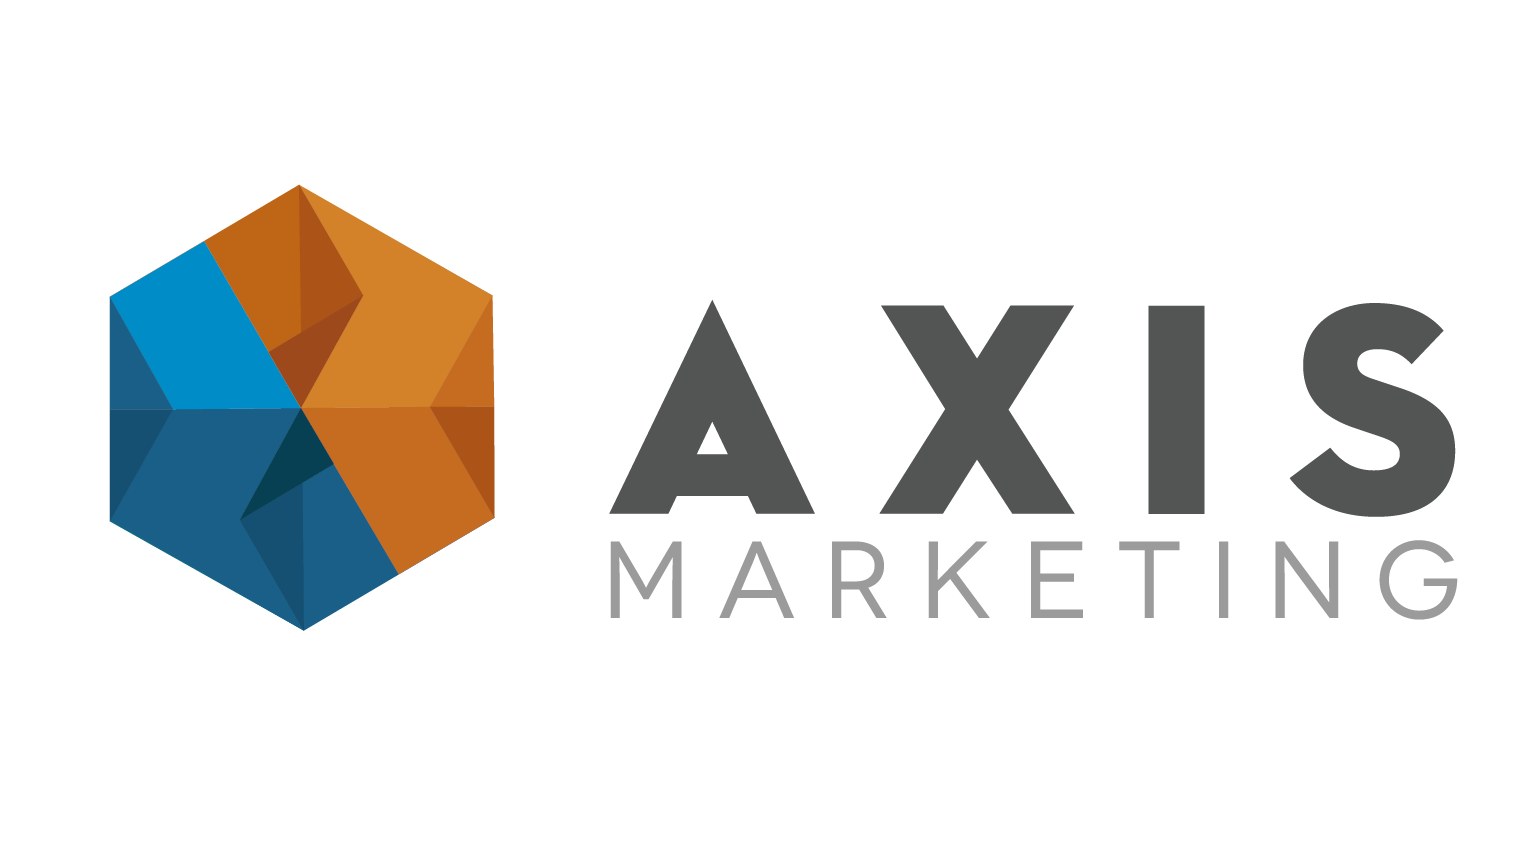 AXIS Marketing